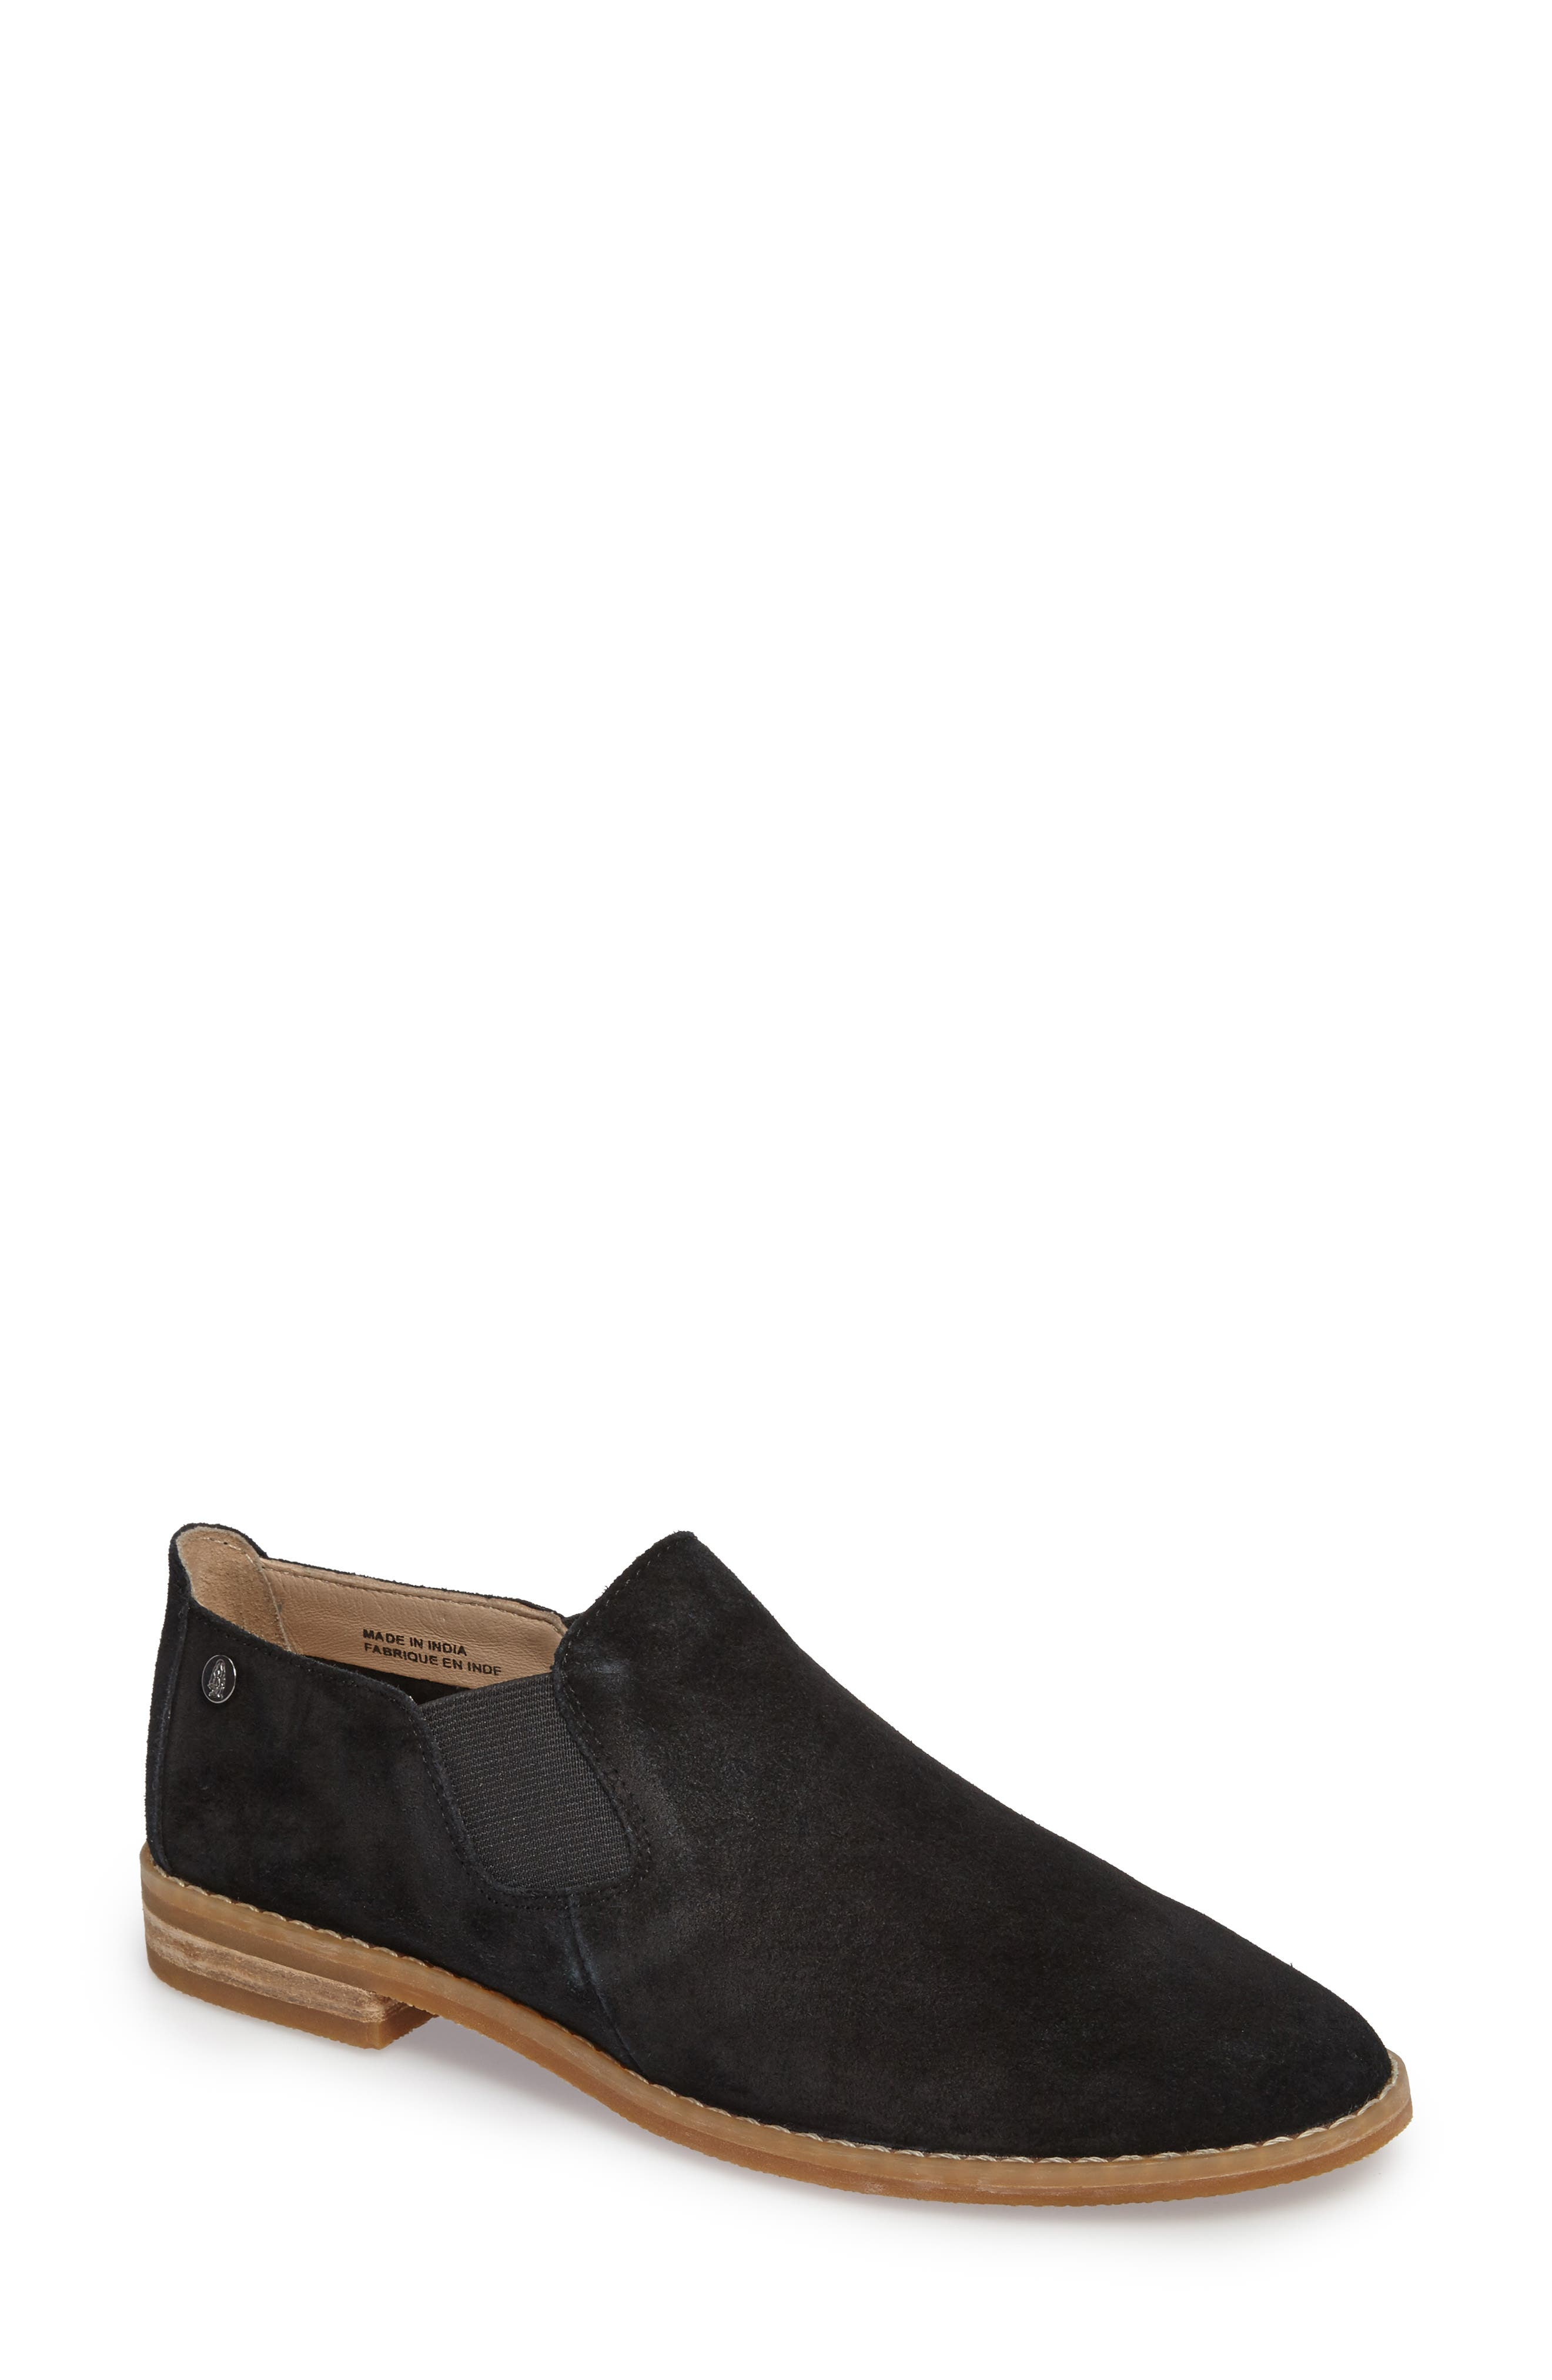 Alternate Image 1 Selected - Hush Puppies® Analise Clever Flat (Women)